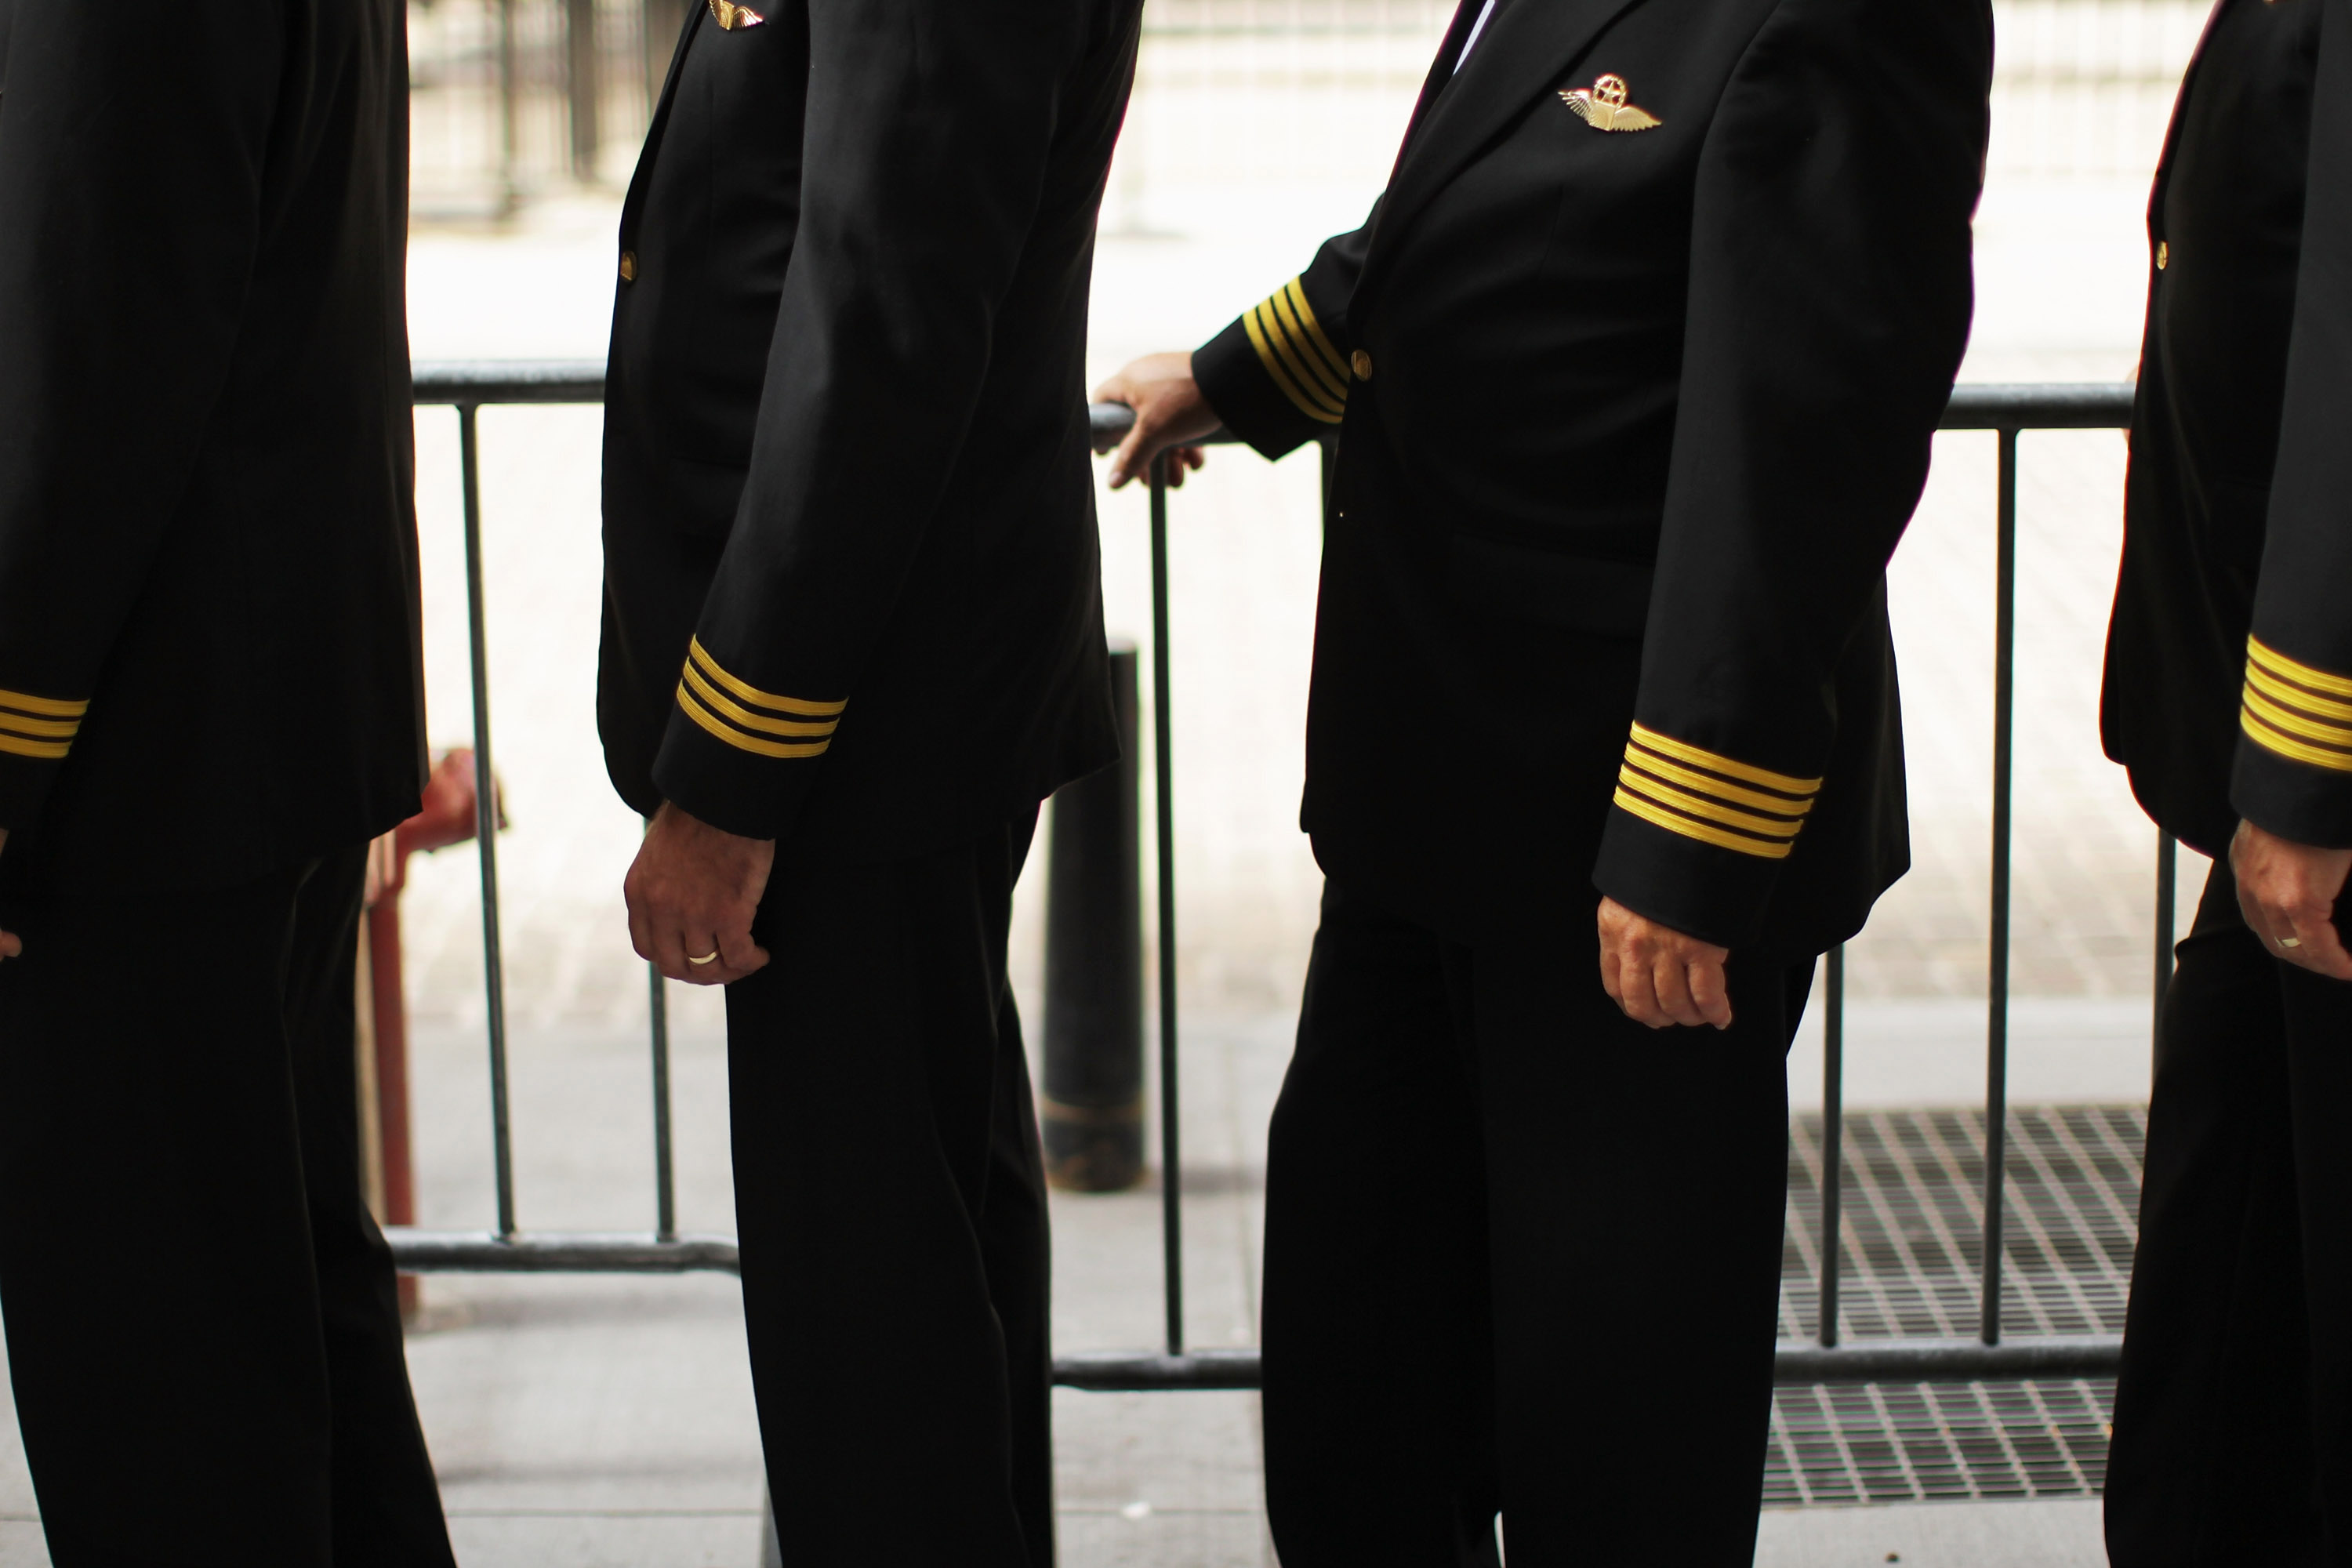 Over 700 hundred Continental and United pilots, joined by additional pilots from other Air Line Pilots Association (ALPA) carriers, demonstrate in front of Wall Street on September 27, 2011 in New York City.